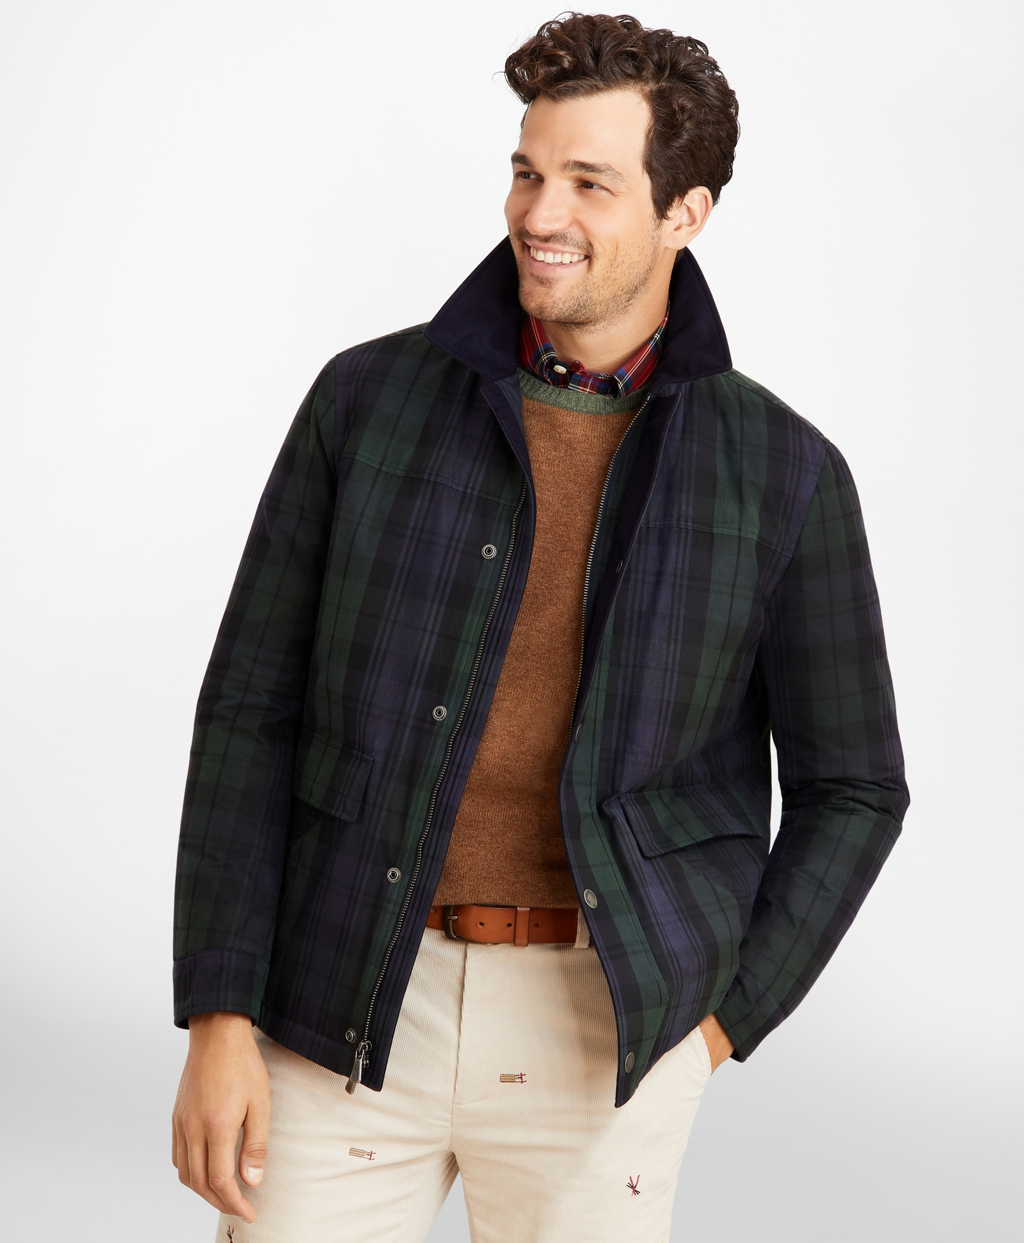 Men's Vintage Jackets & Coats Brooks Brothers Mens Black Watch Tartan Waxed Cotton Barn Coat $418.60 AT vintagedancer.com